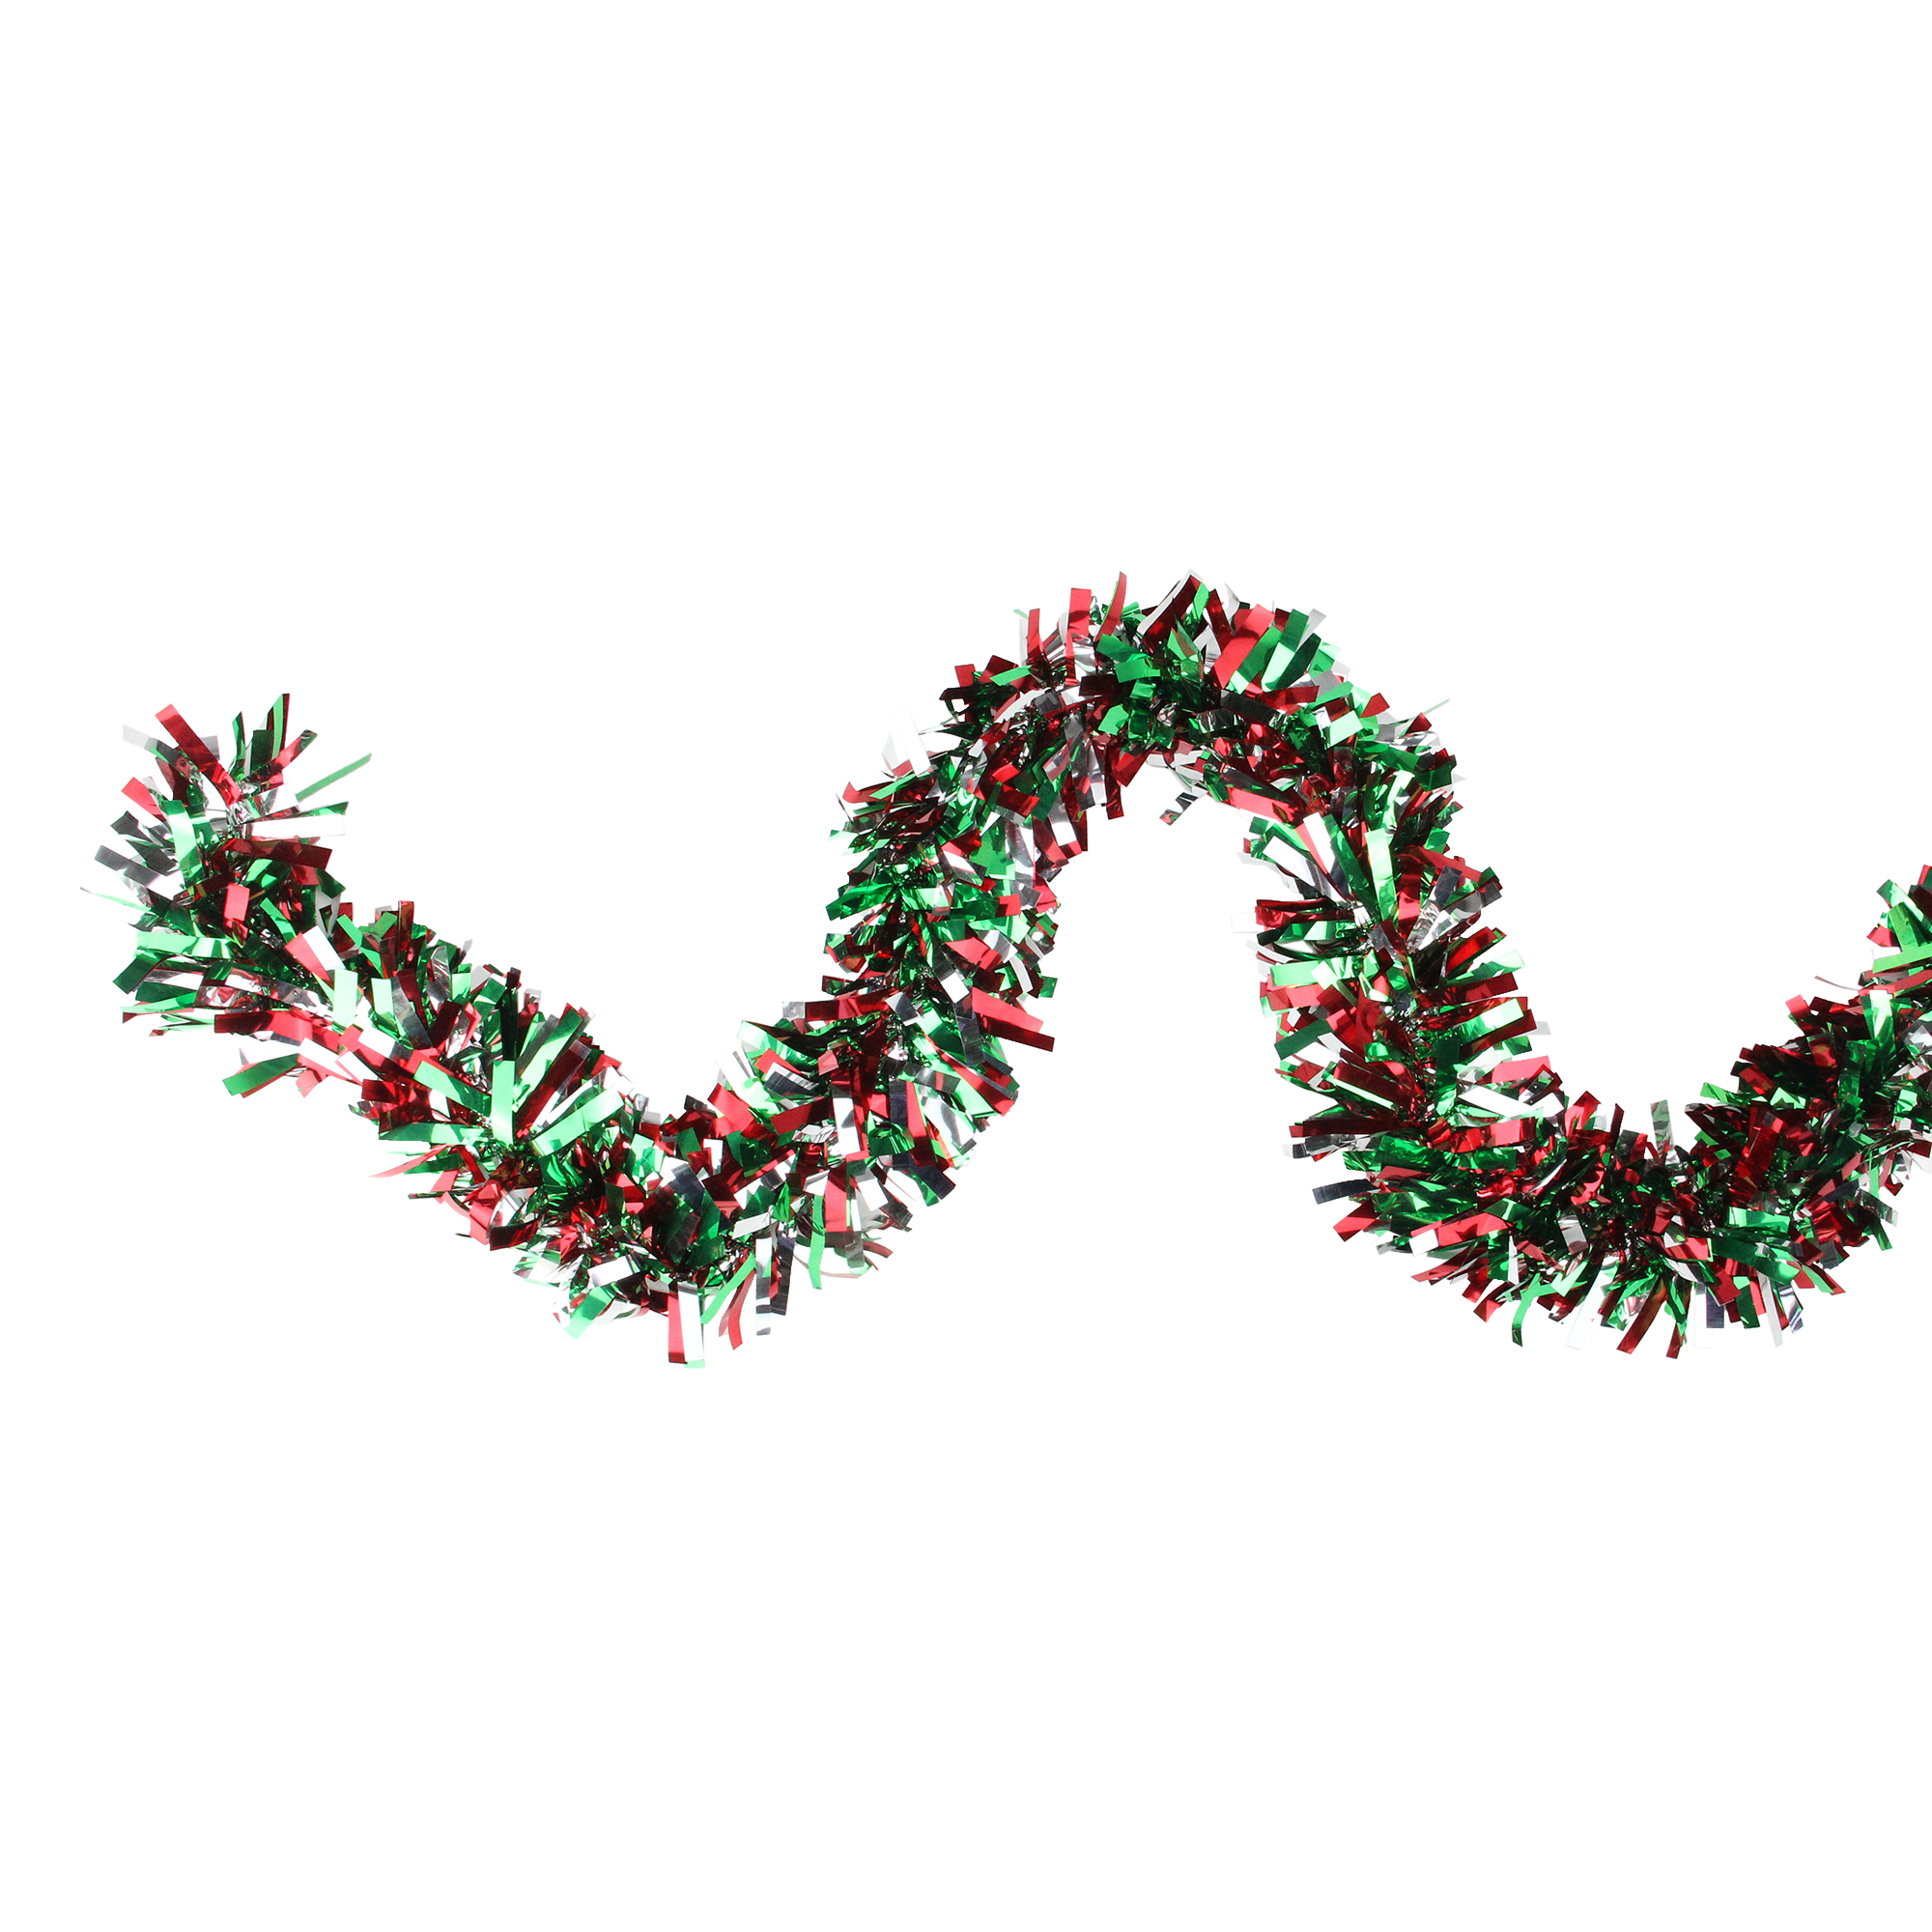 "Northlight 12' x 4"" Unlit Green/Red Wide Cut Shiny Tinsel Christmas Garland"